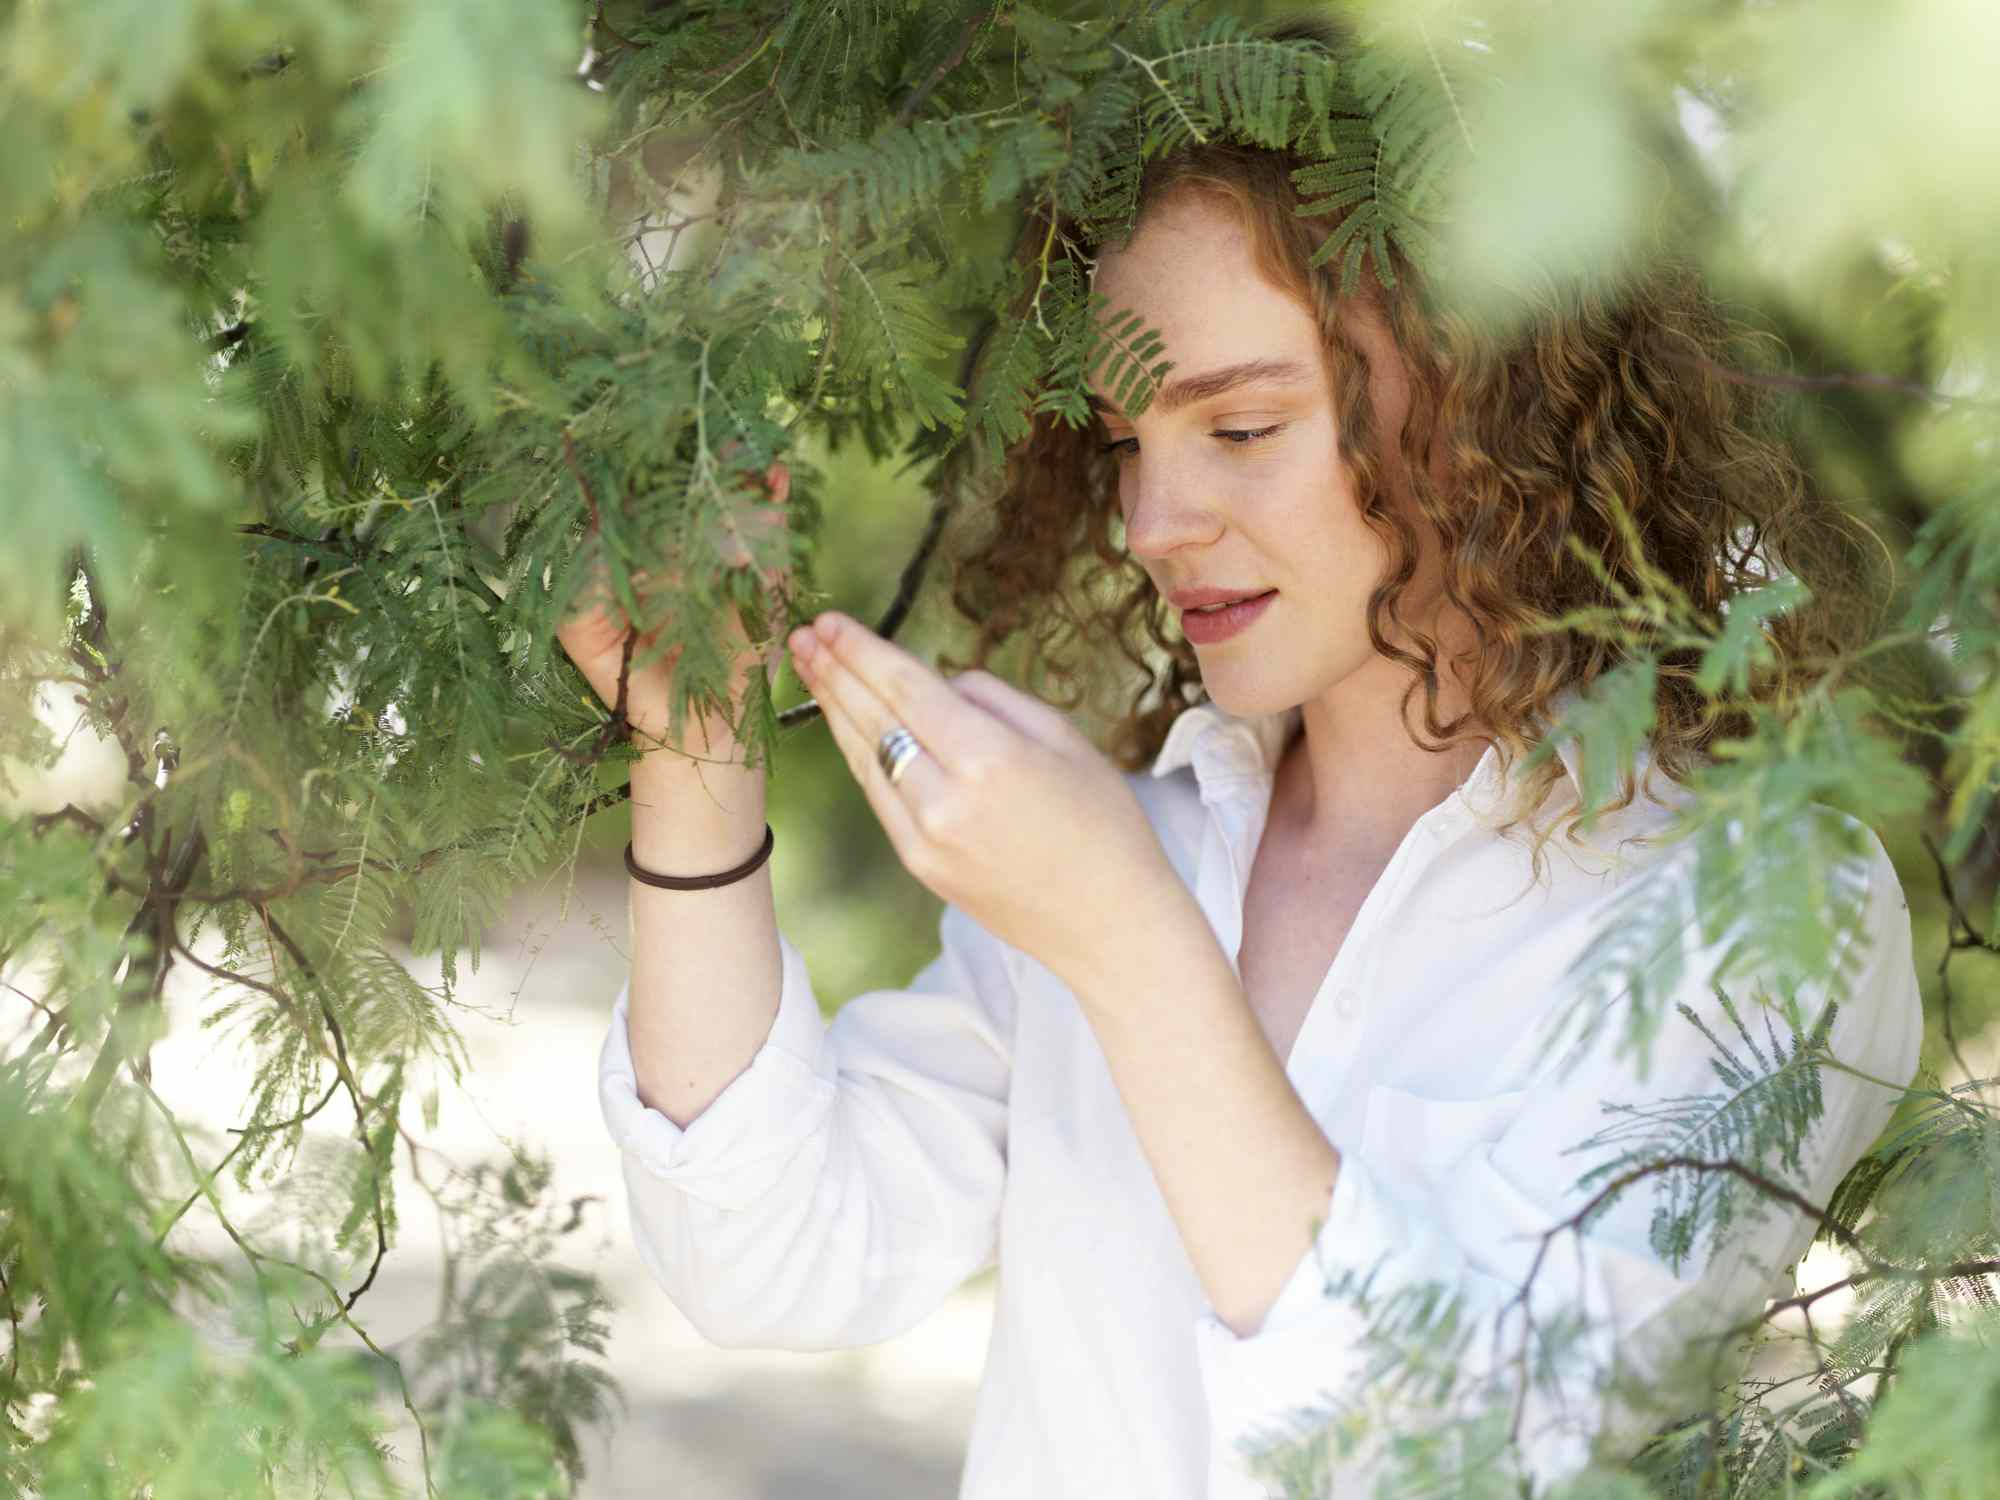 young woman examining the leafes of a tree